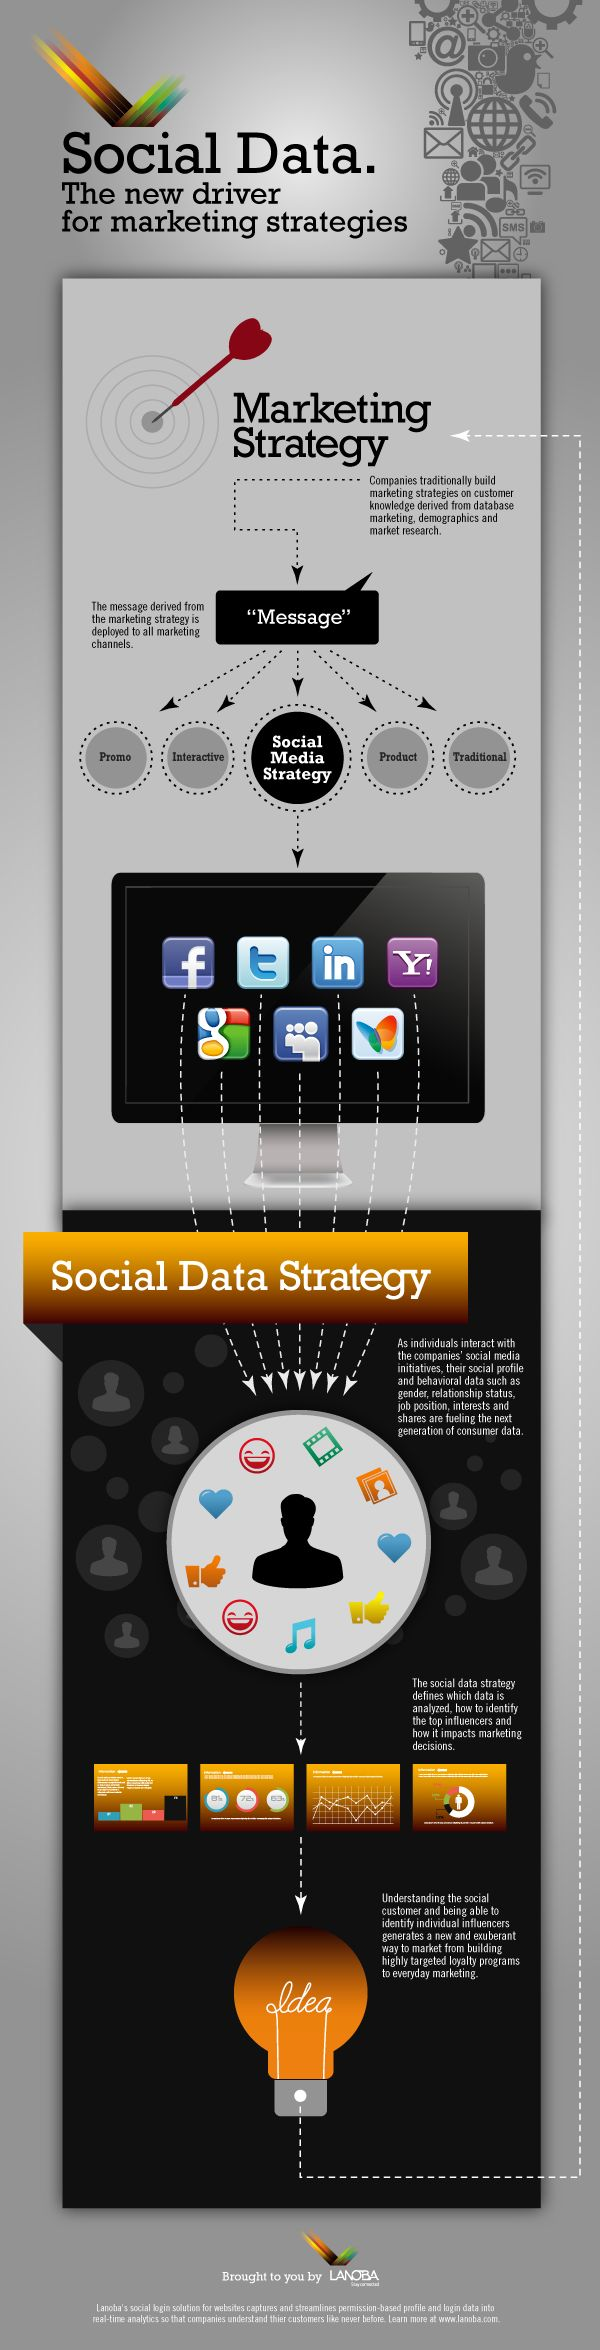 Social data: The new driver for marketing strategies